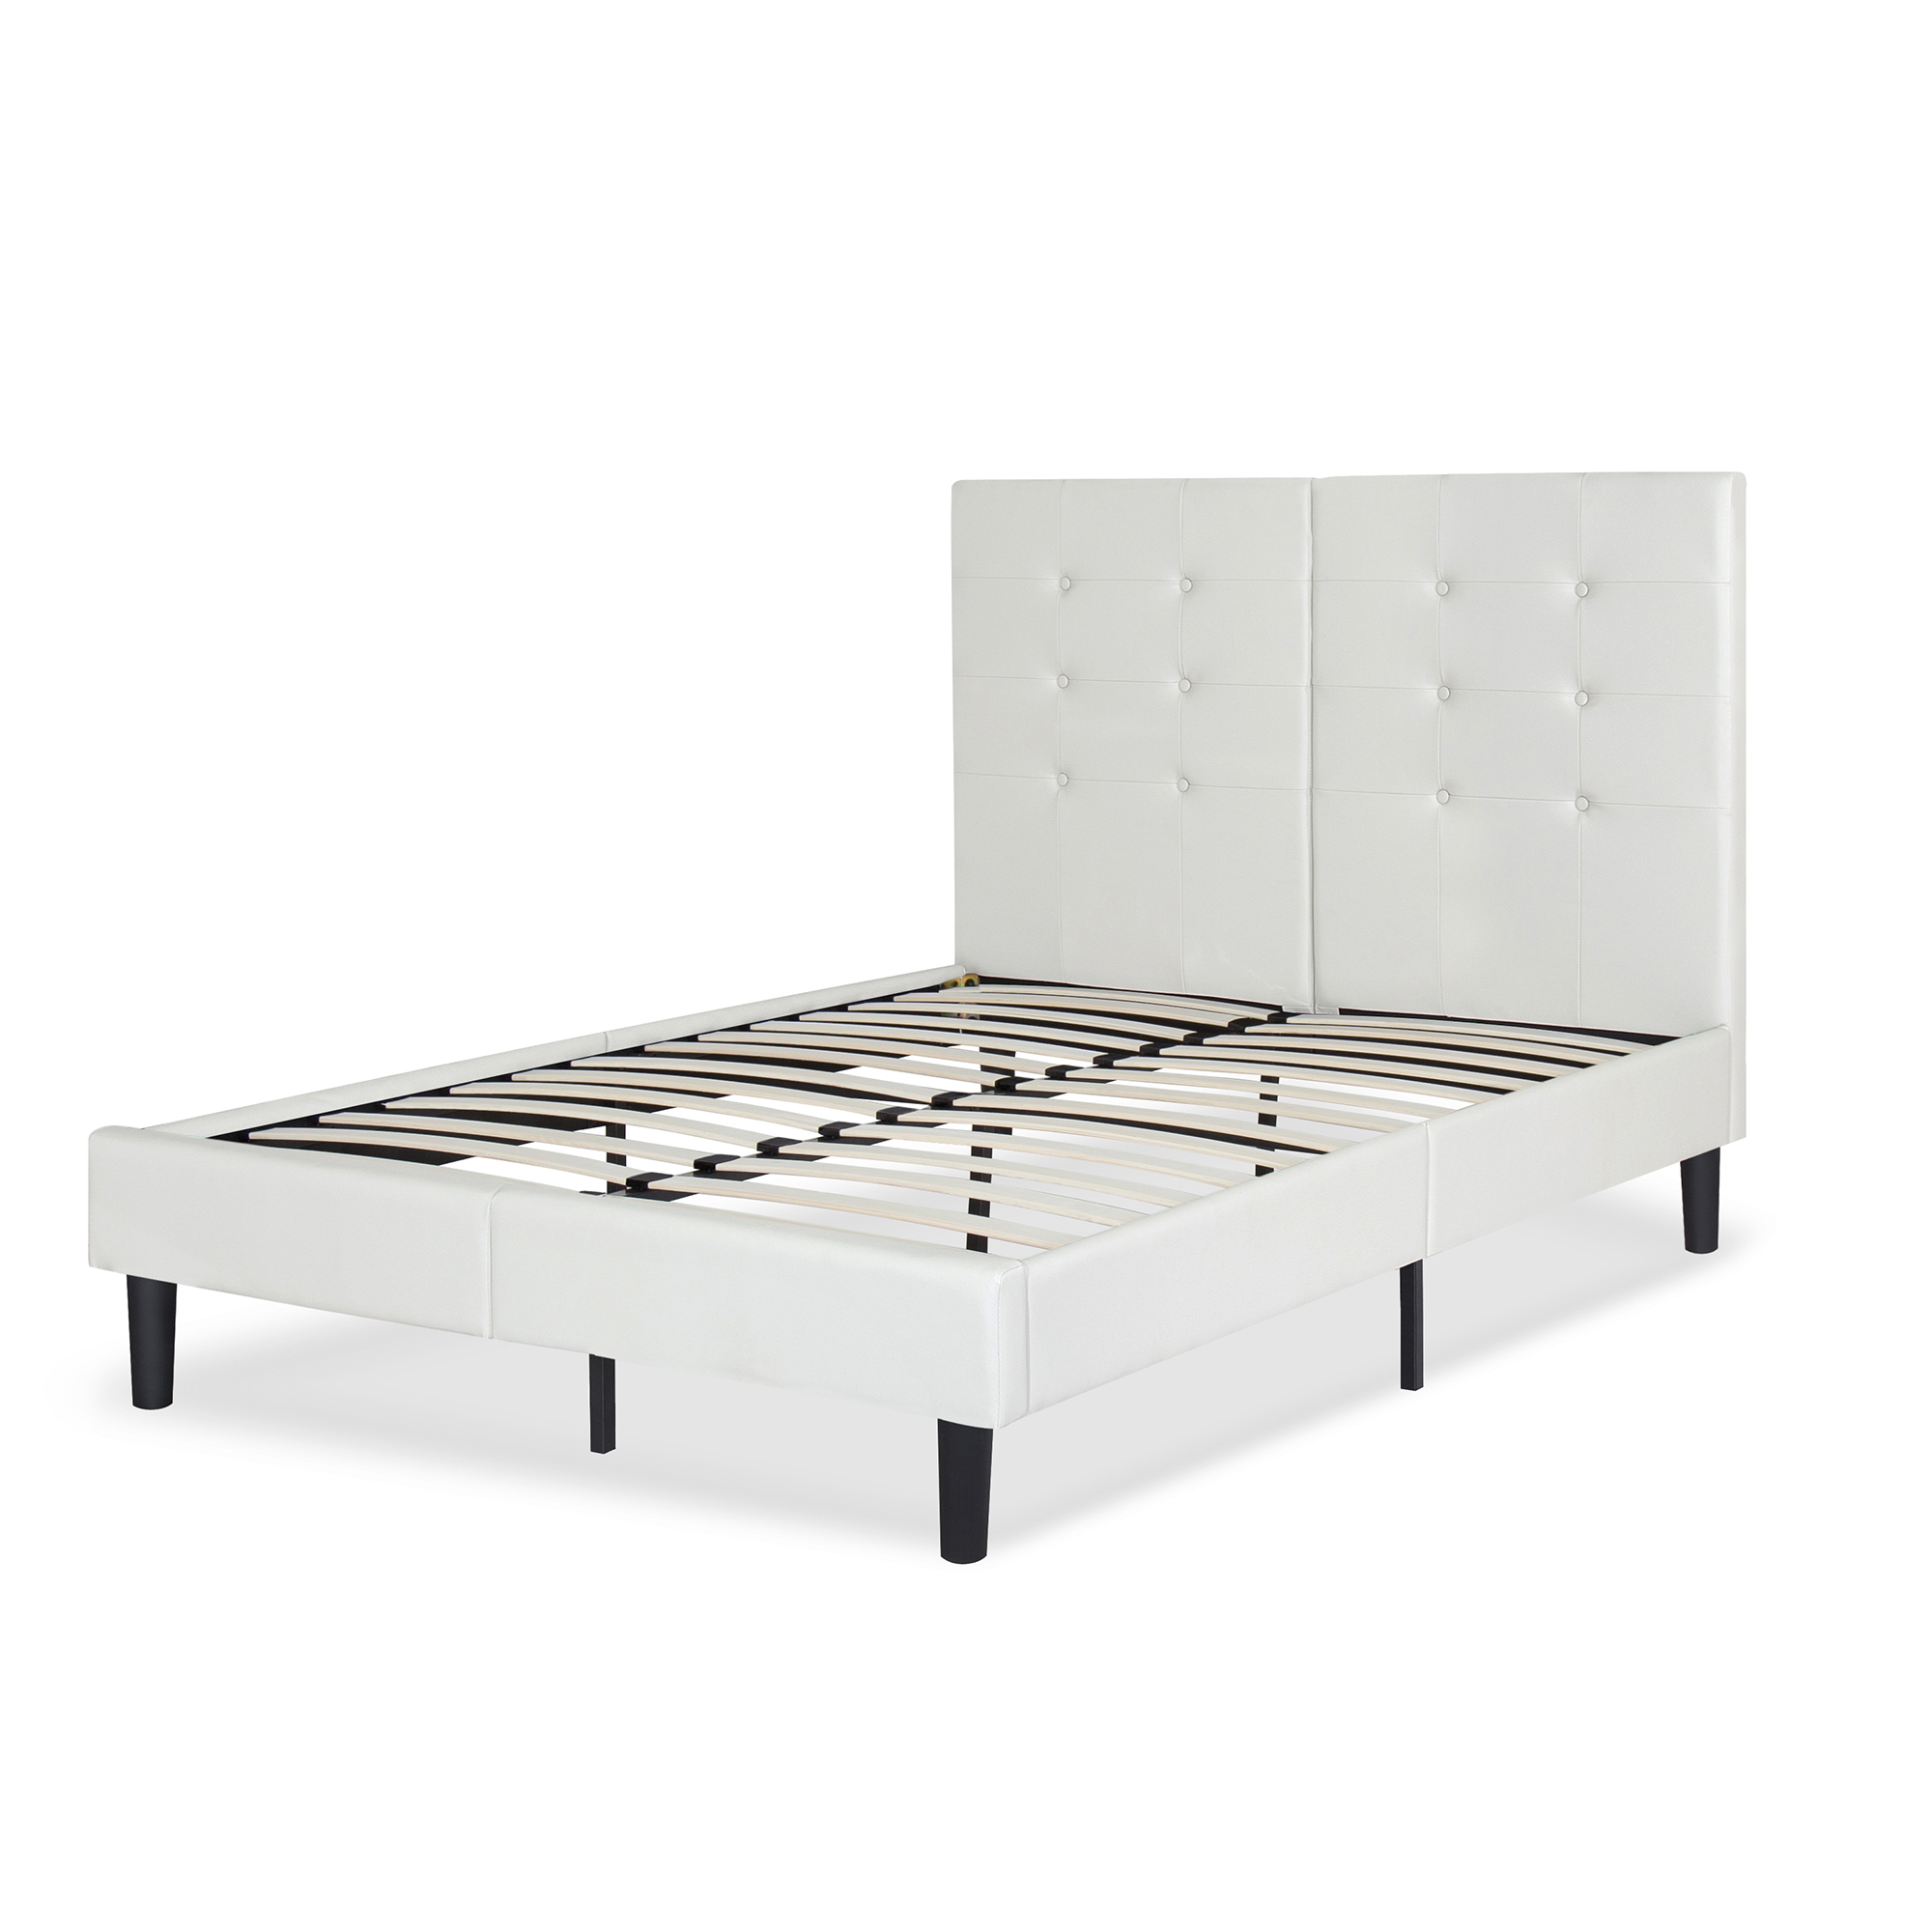 "GranRest 14"" Dura Metal Faux Leather Platform Bed Frame, Gray, Full by Grantec Co.; Ltd"